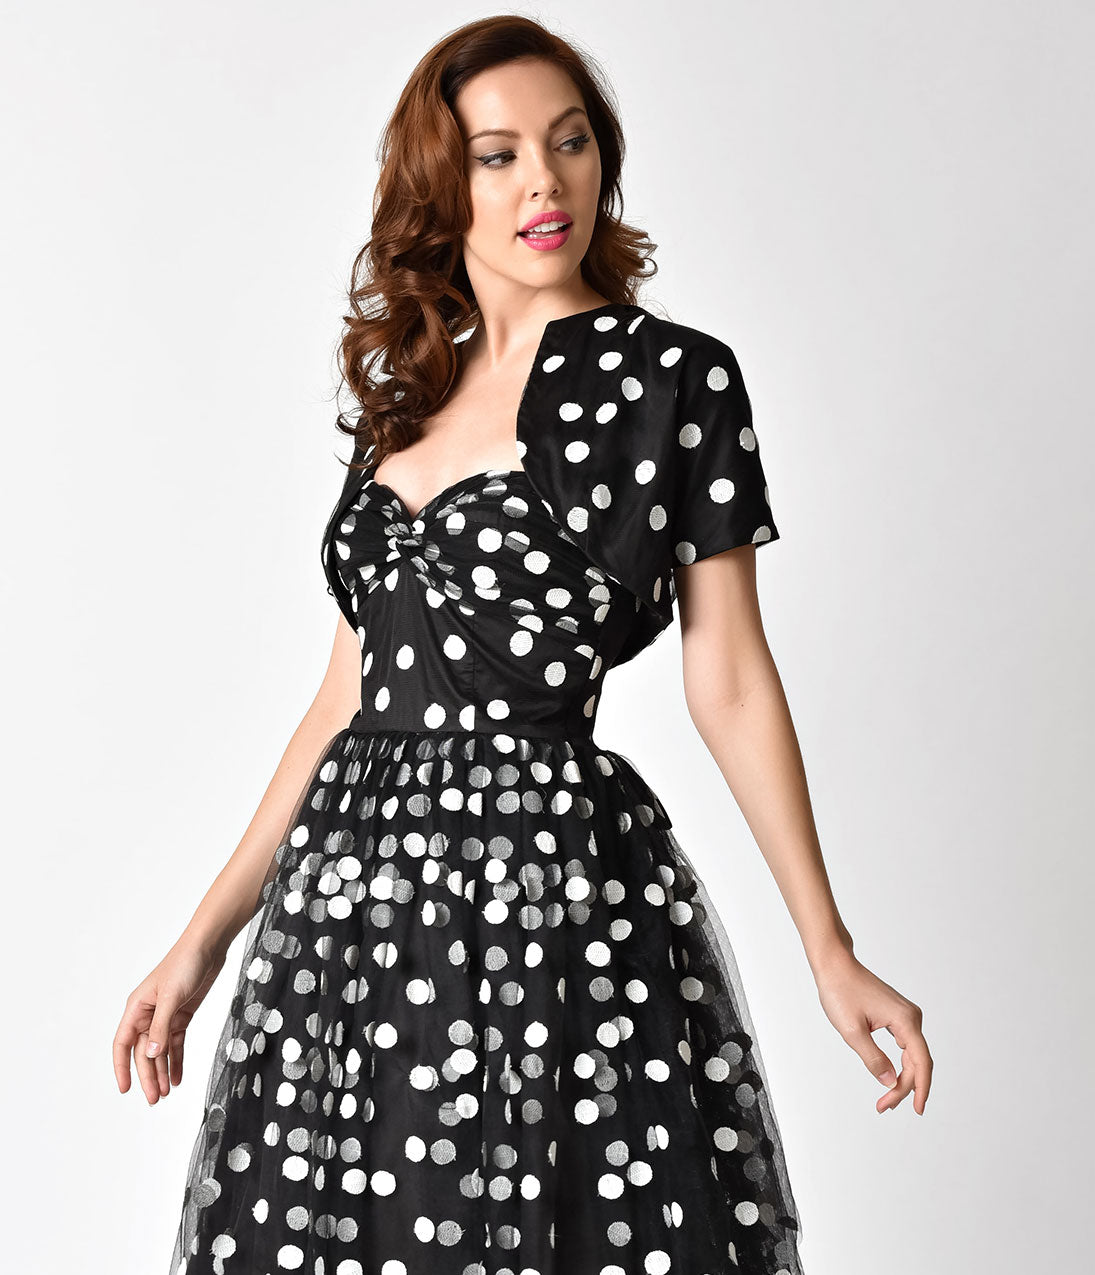 1950s Jackets and Coats | Swing, Pin Up, Rockabilly Janie Bryant For Unique Vintage Black  White Dot Gertie Bolero $36.00 AT vintagedancer.com